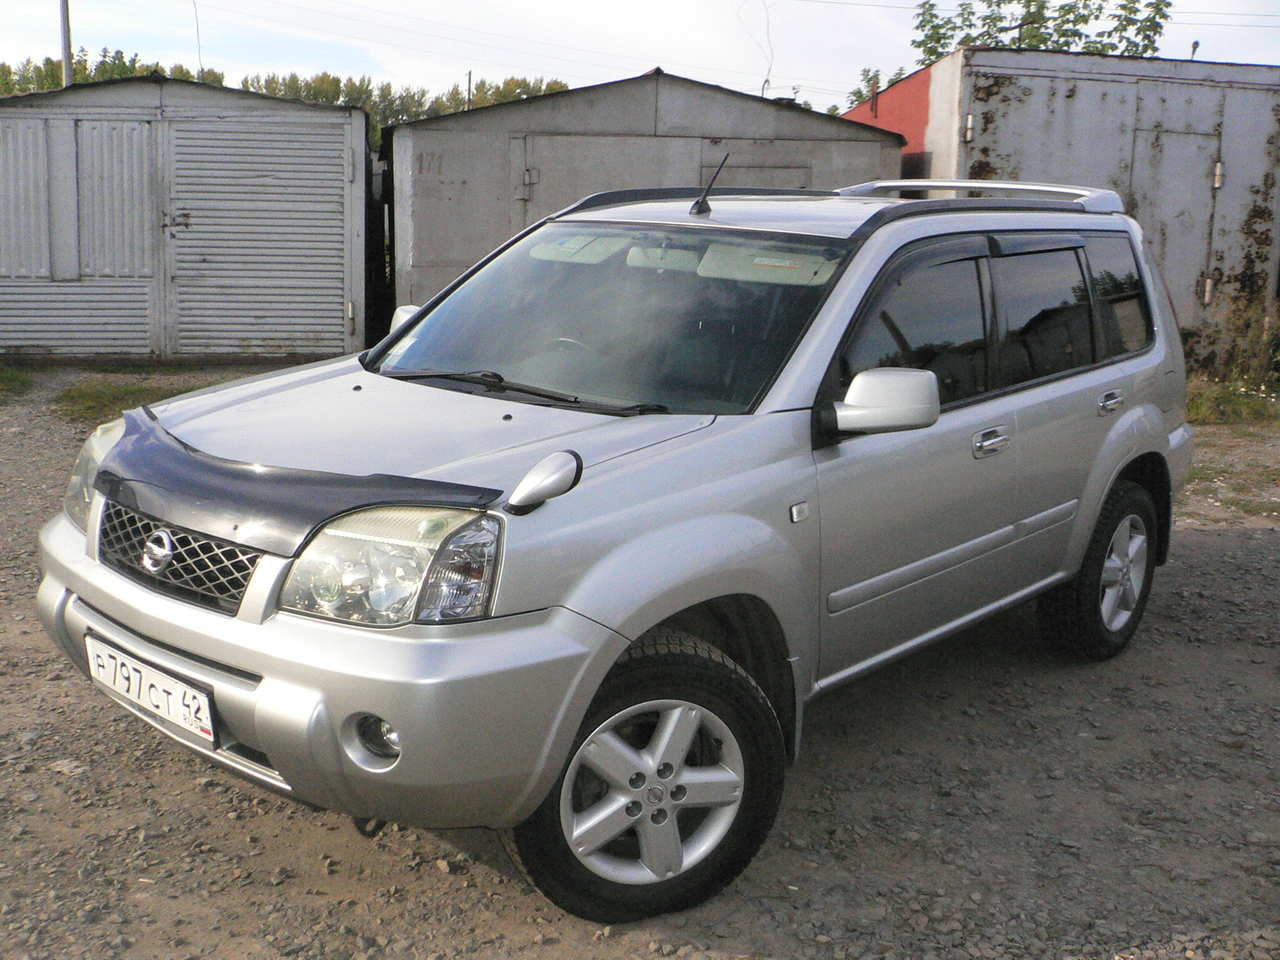 2003 nissan x trail pics 2 0 gasoline automatic for sale. Black Bedroom Furniture Sets. Home Design Ideas